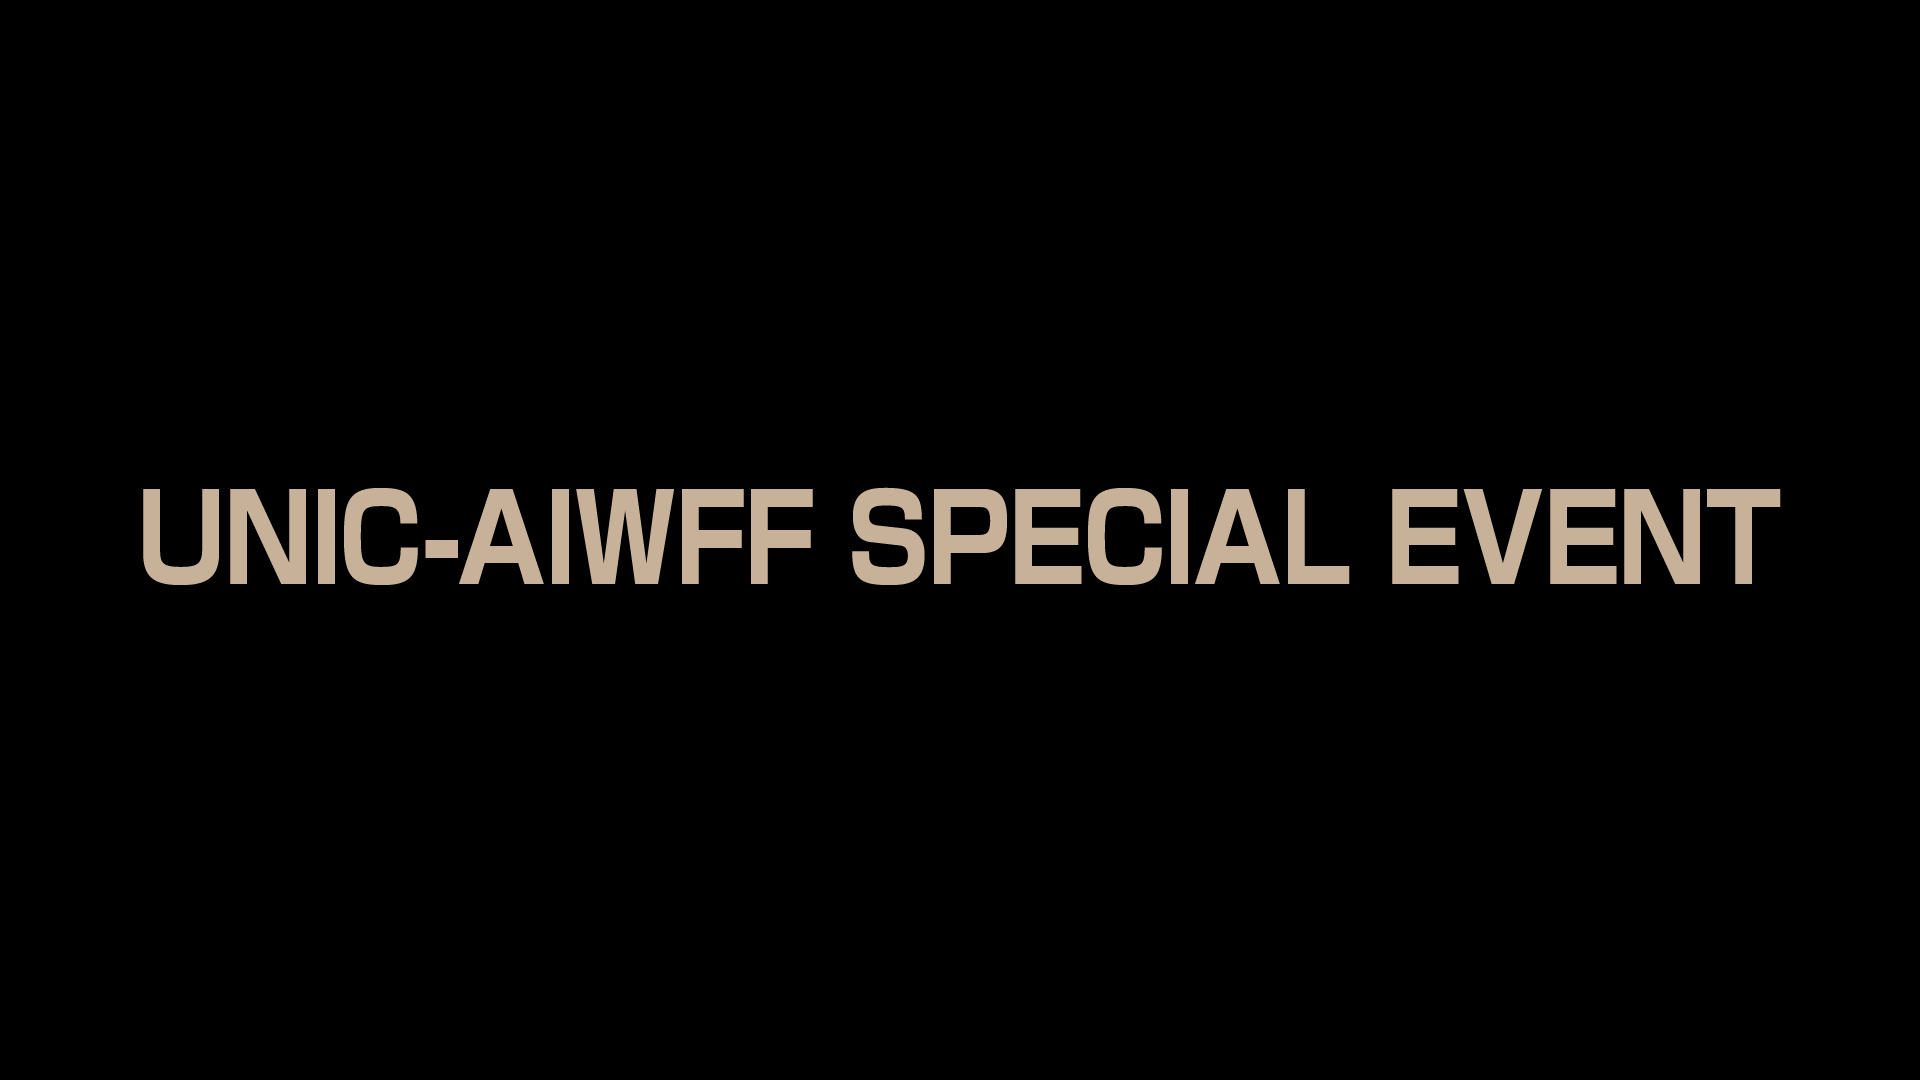 UNIC-AIWFF SPECIAL EVENT